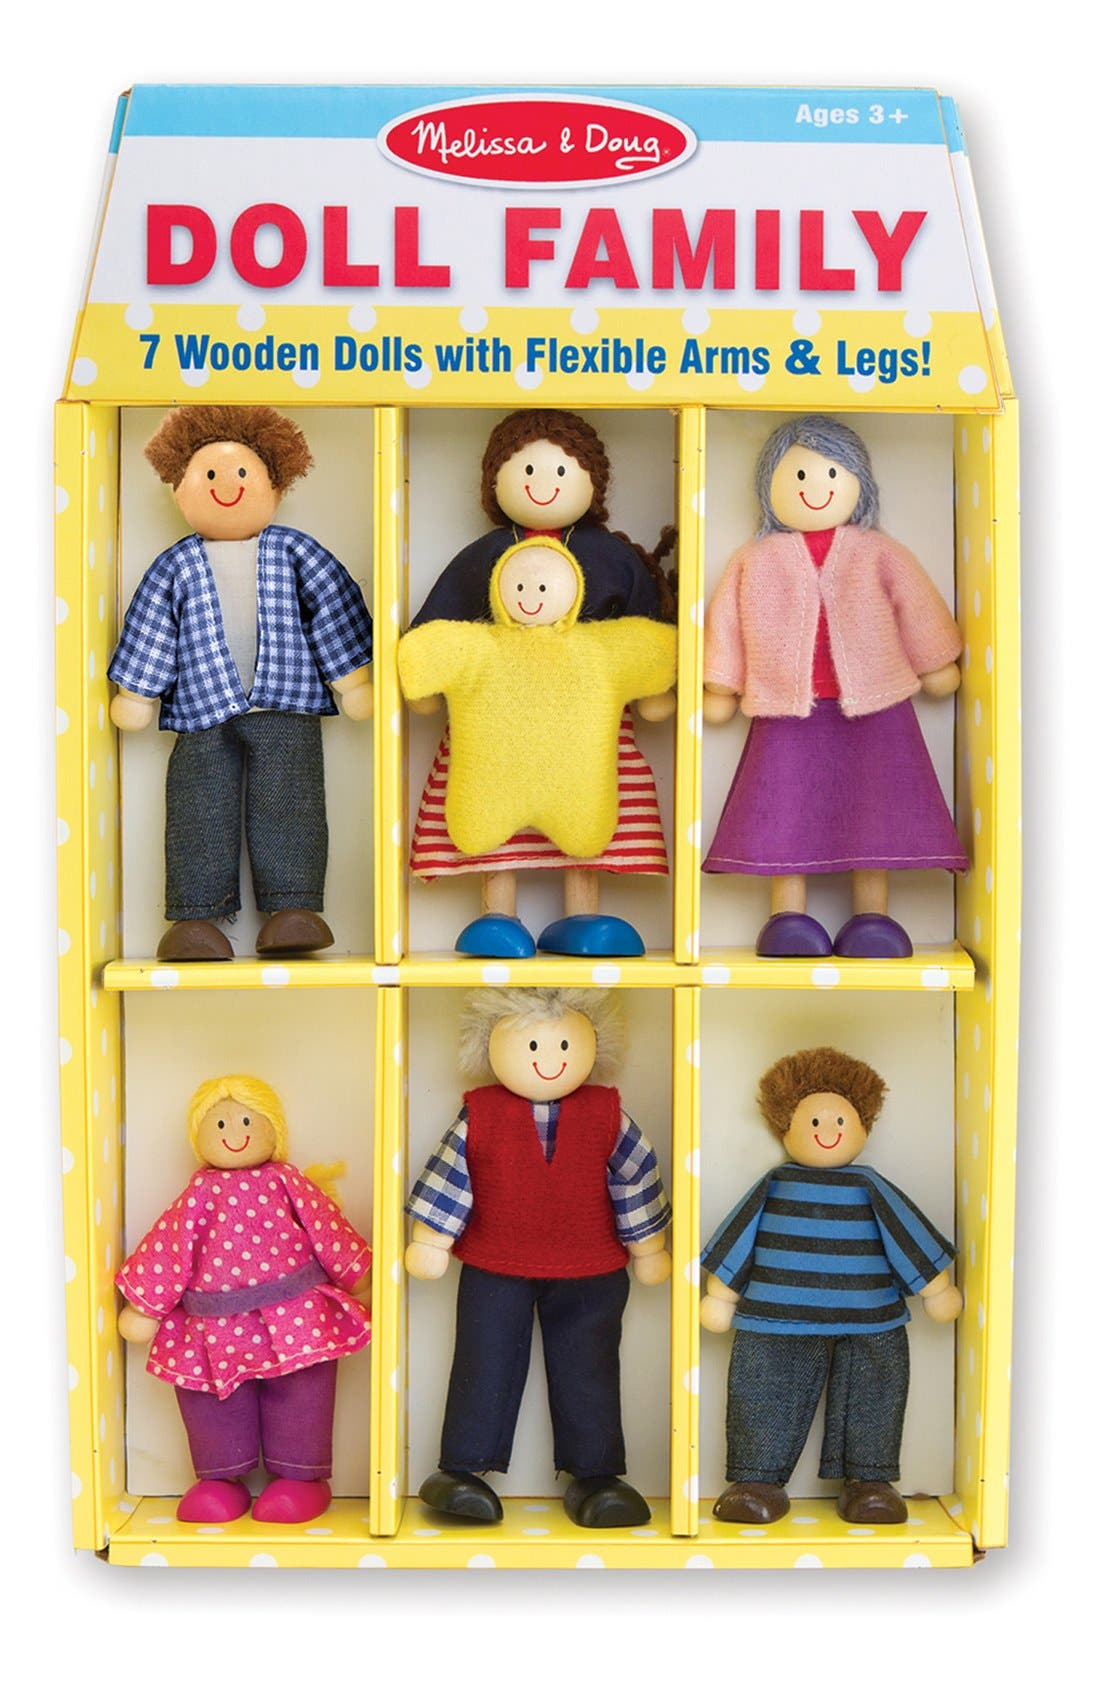 Alternate Image 1 Selected - Melissa & Doug Doll Family (Set of 7)